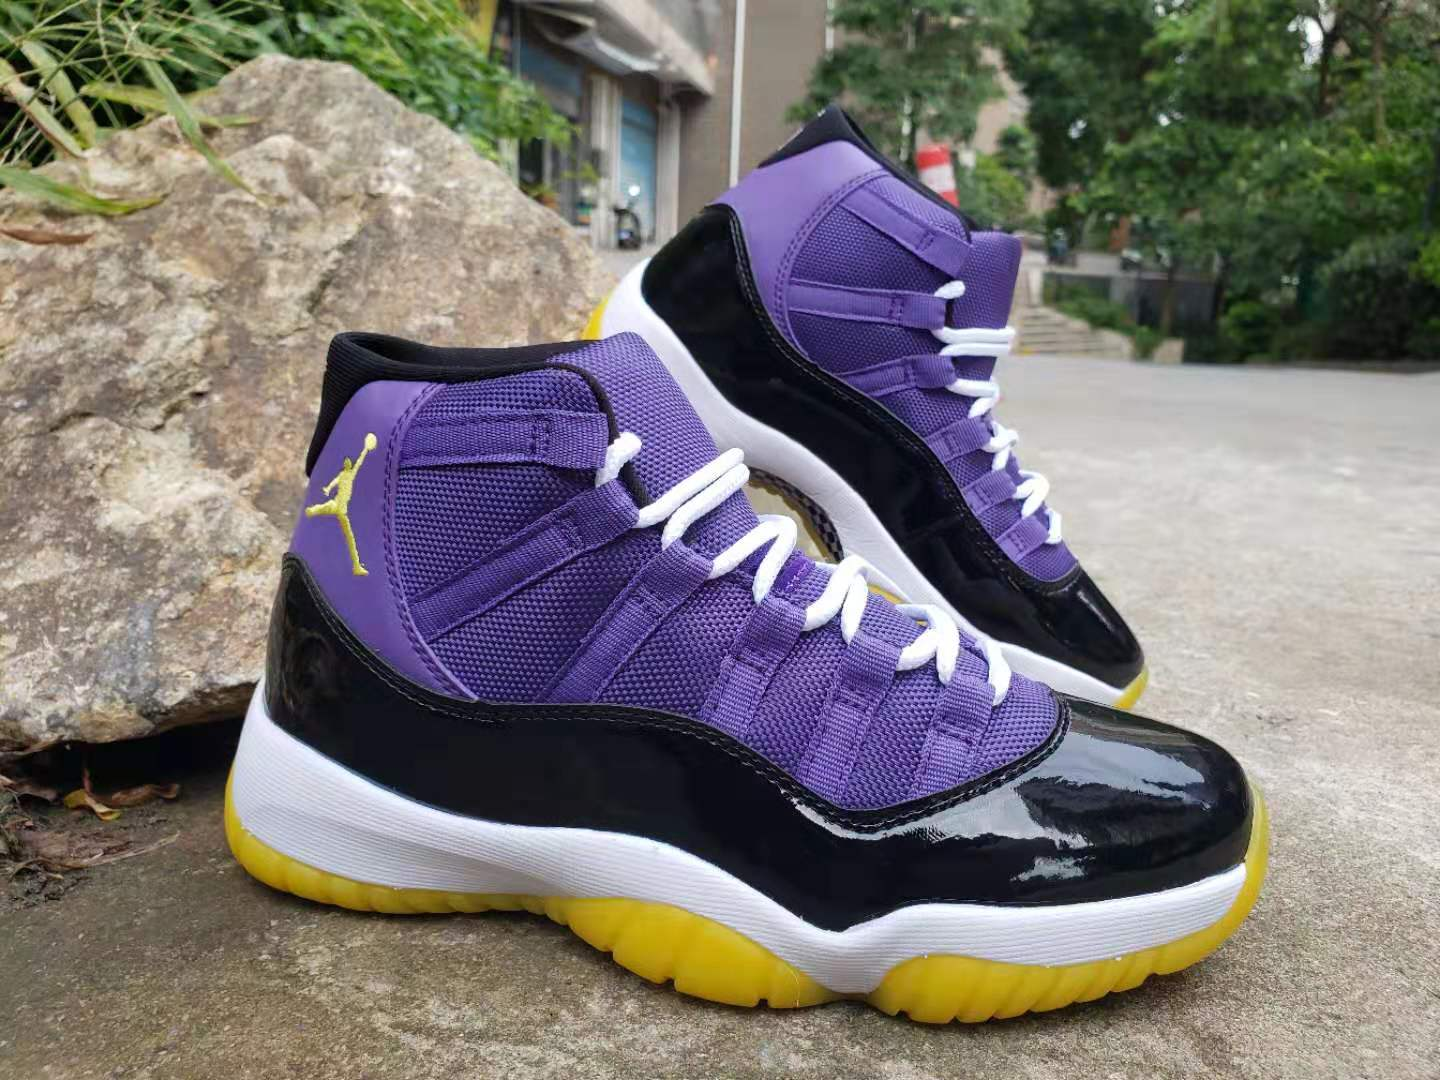 2019 Air Jordan 11 Retro Purple Black White Yellow